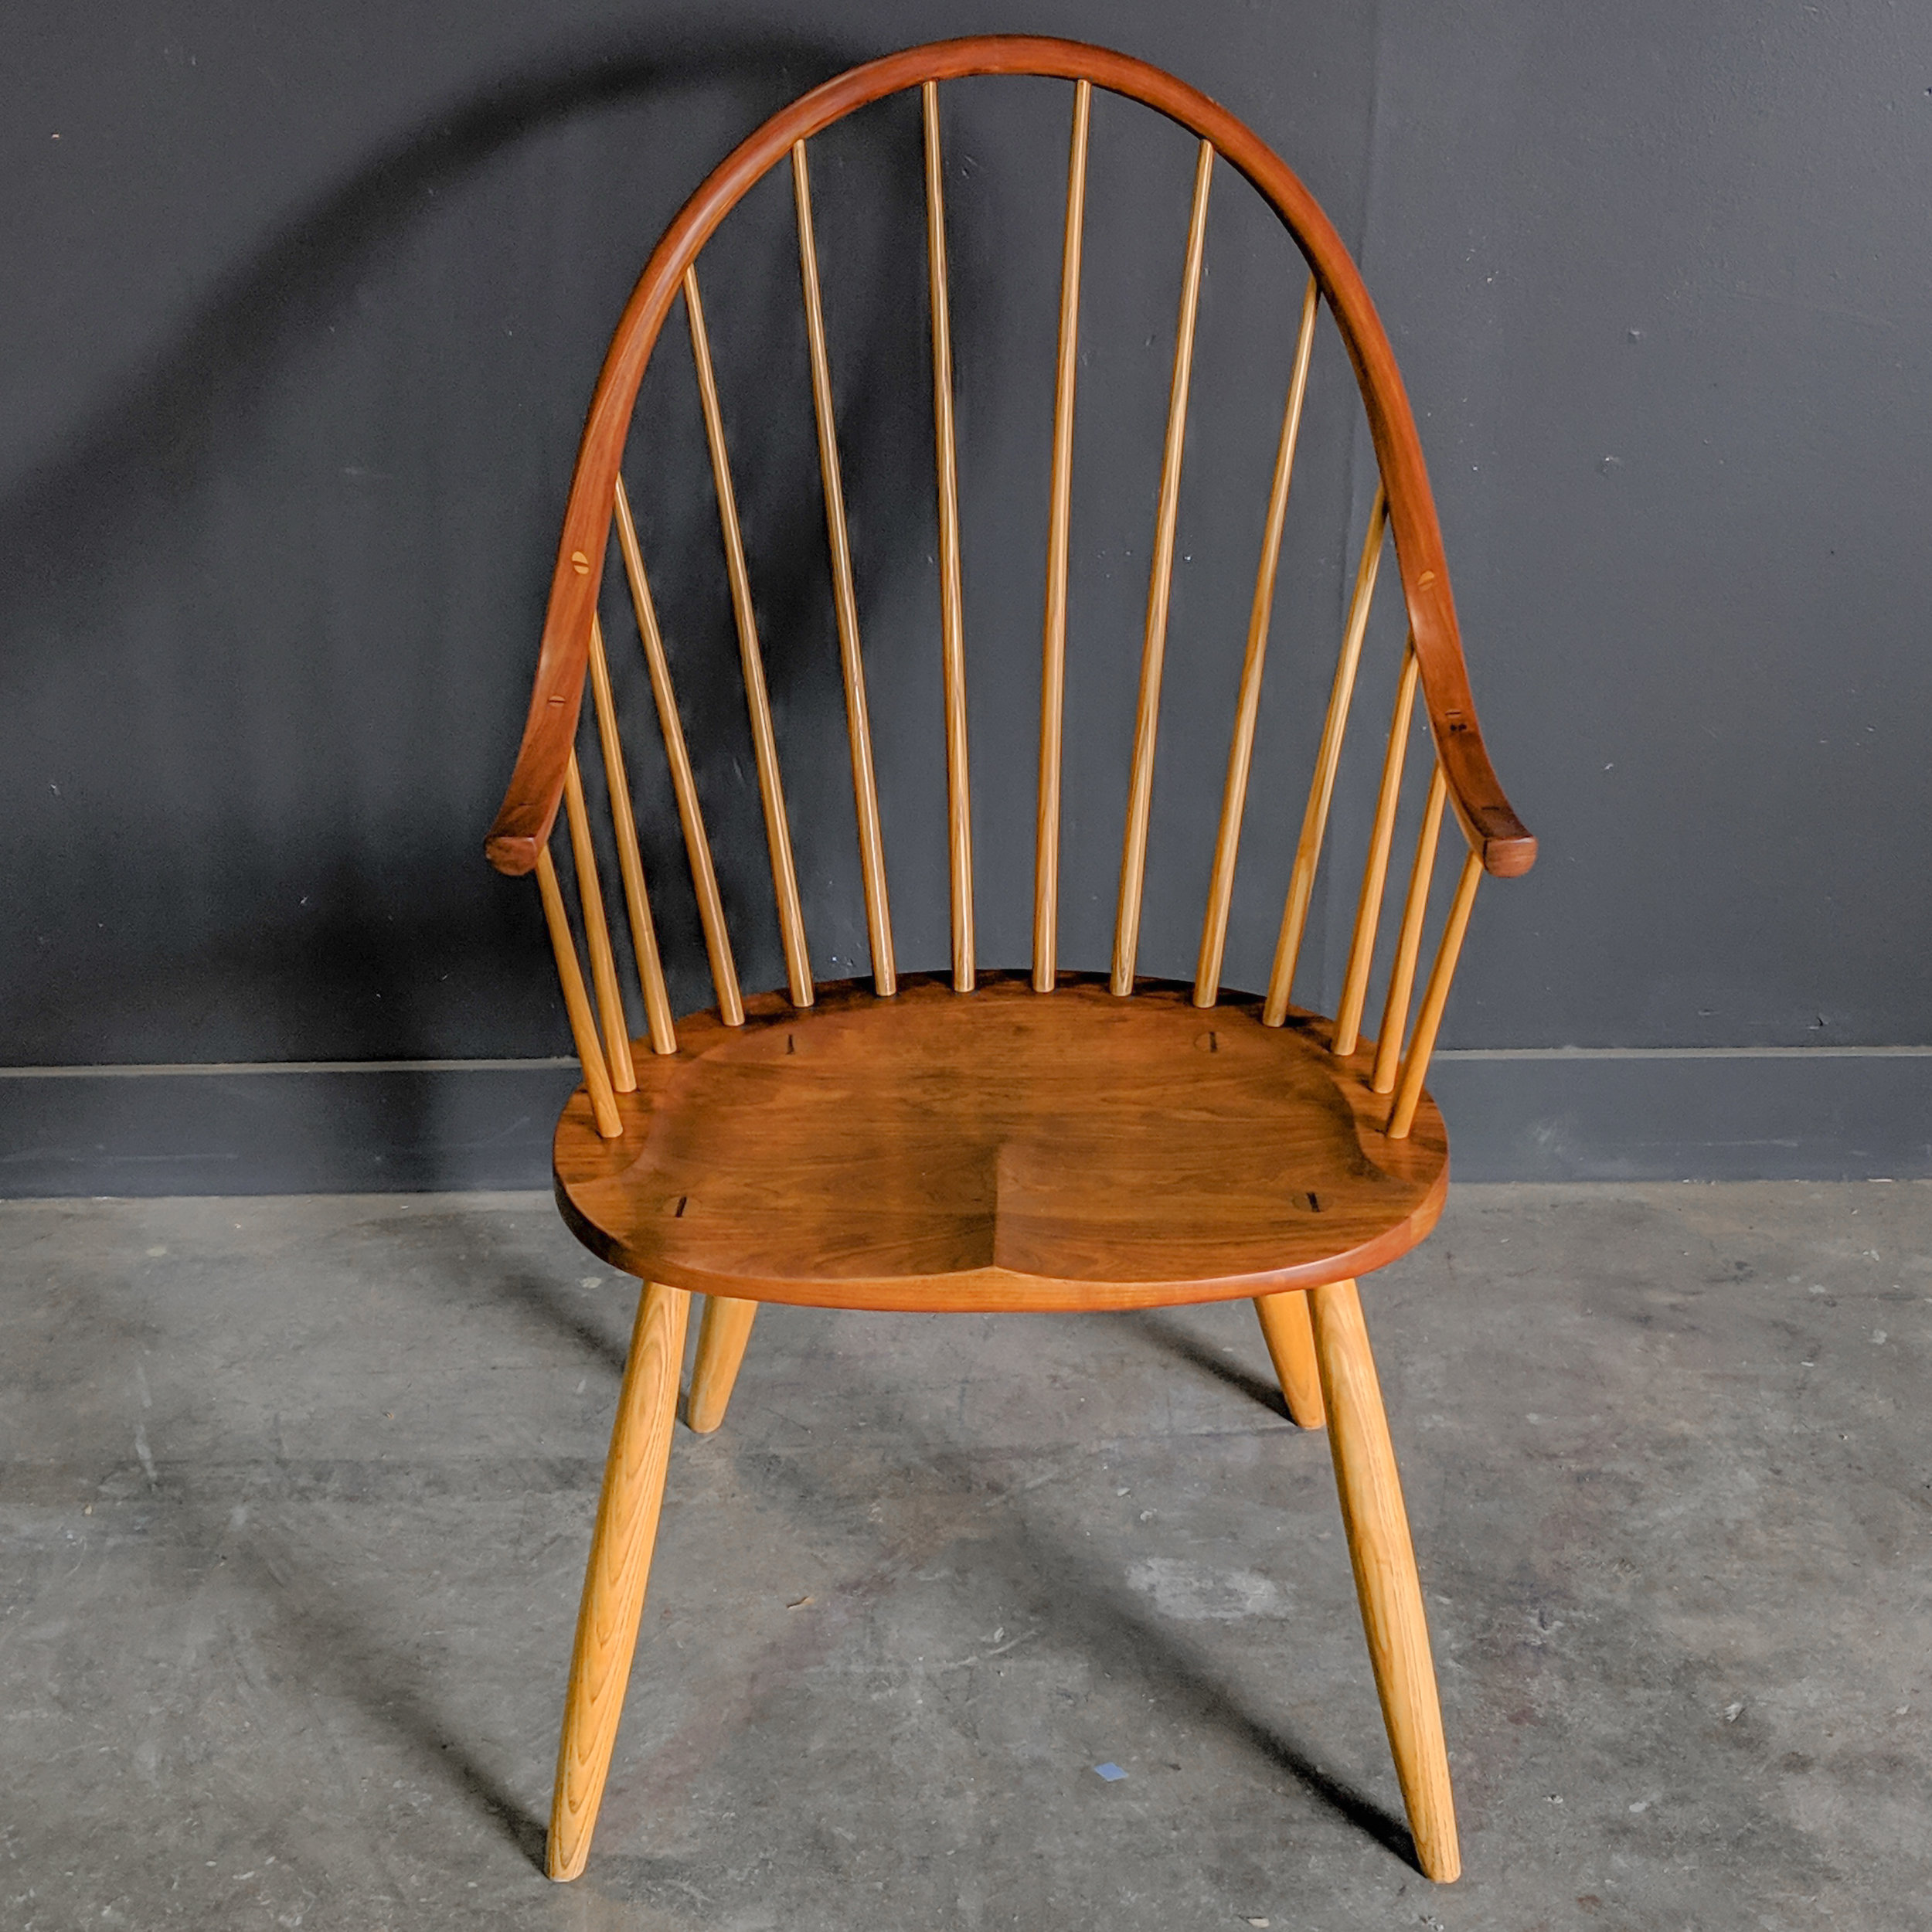 Chair Repair Windsor Chair Repair Kin Furniture Co Furniture Repair